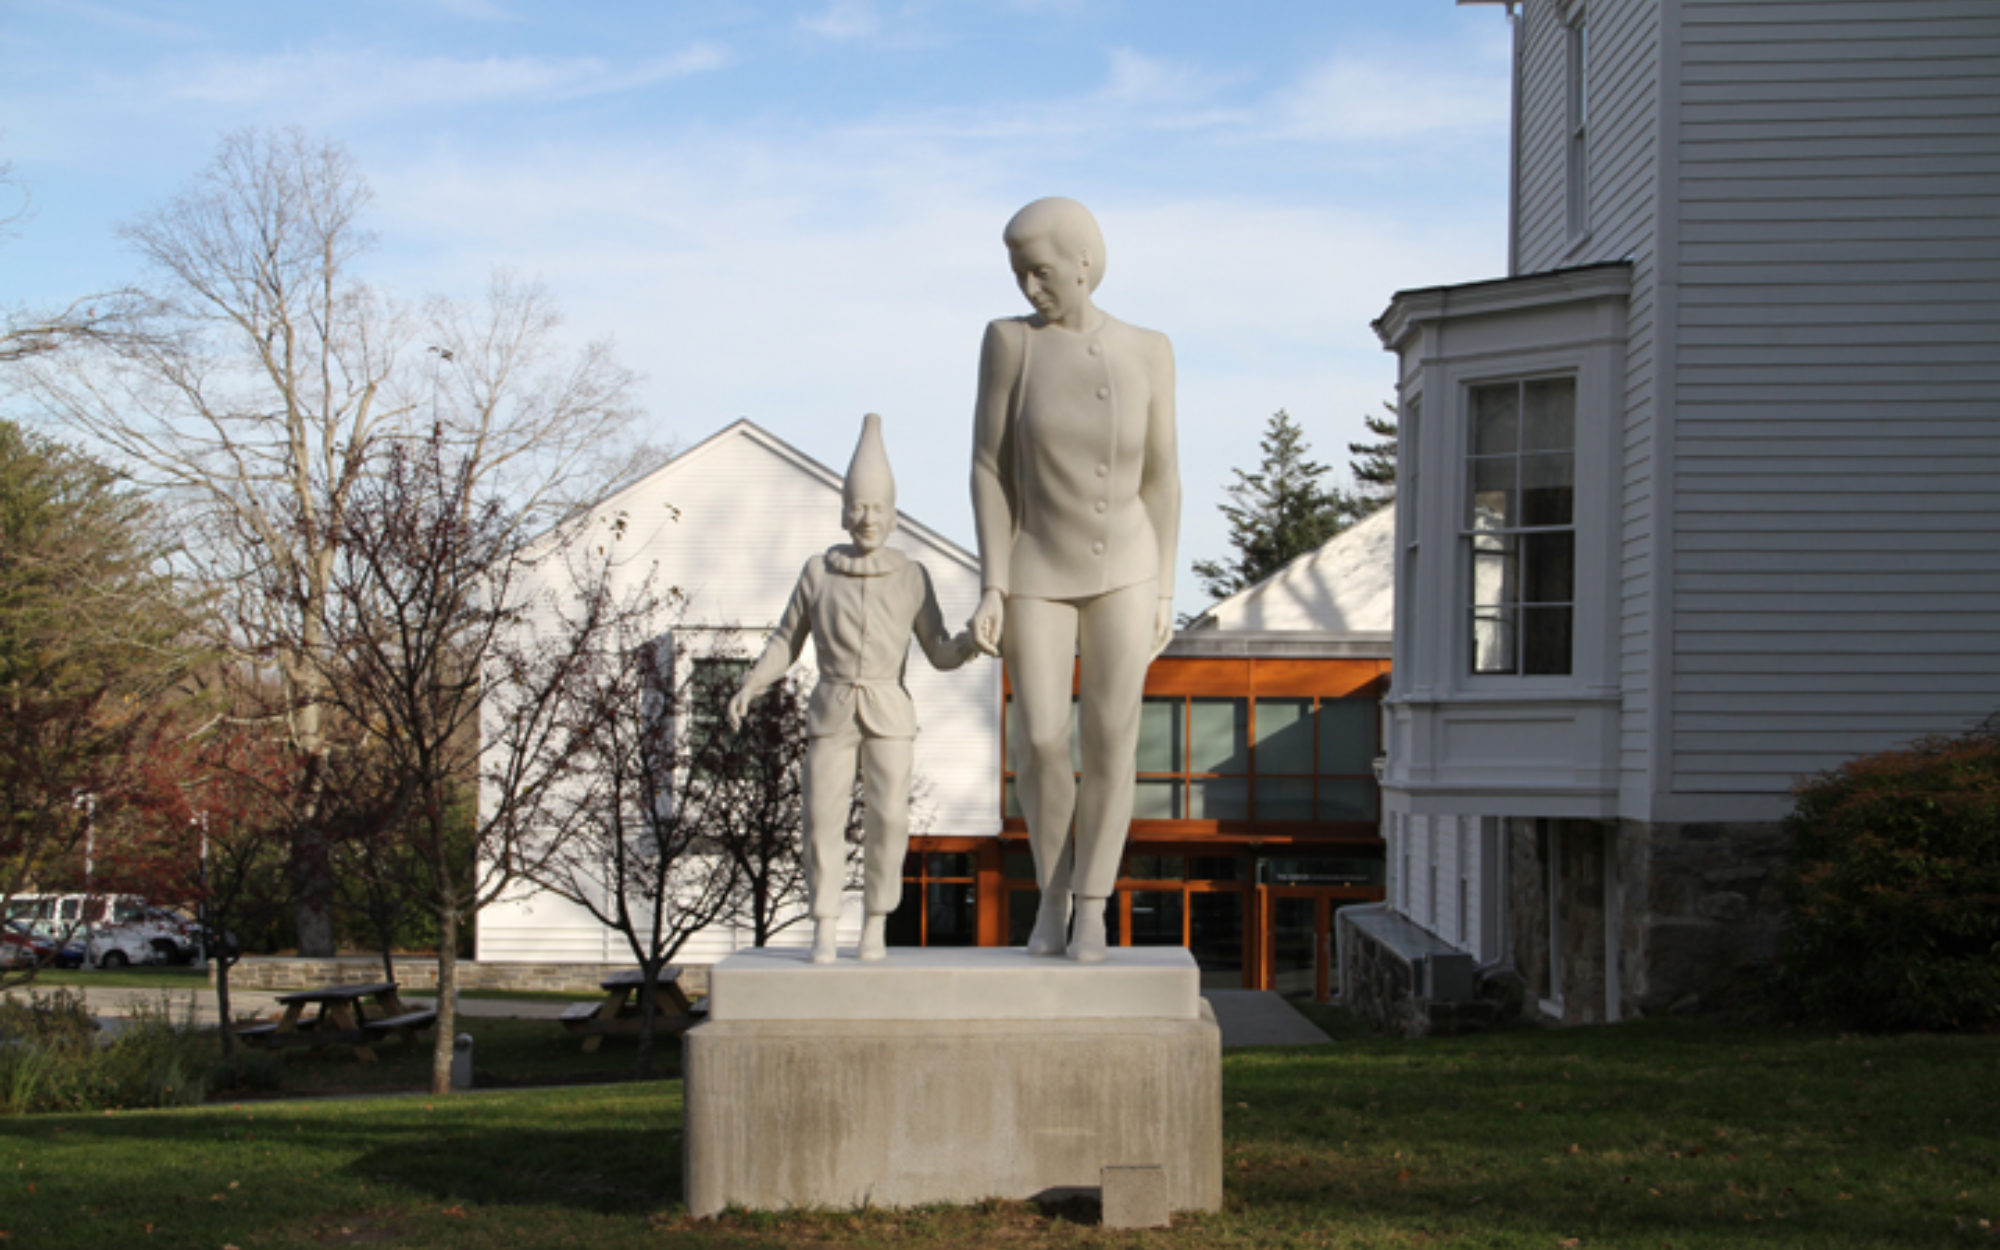 Small sculptural figures walk hand and hand with Museum in the background